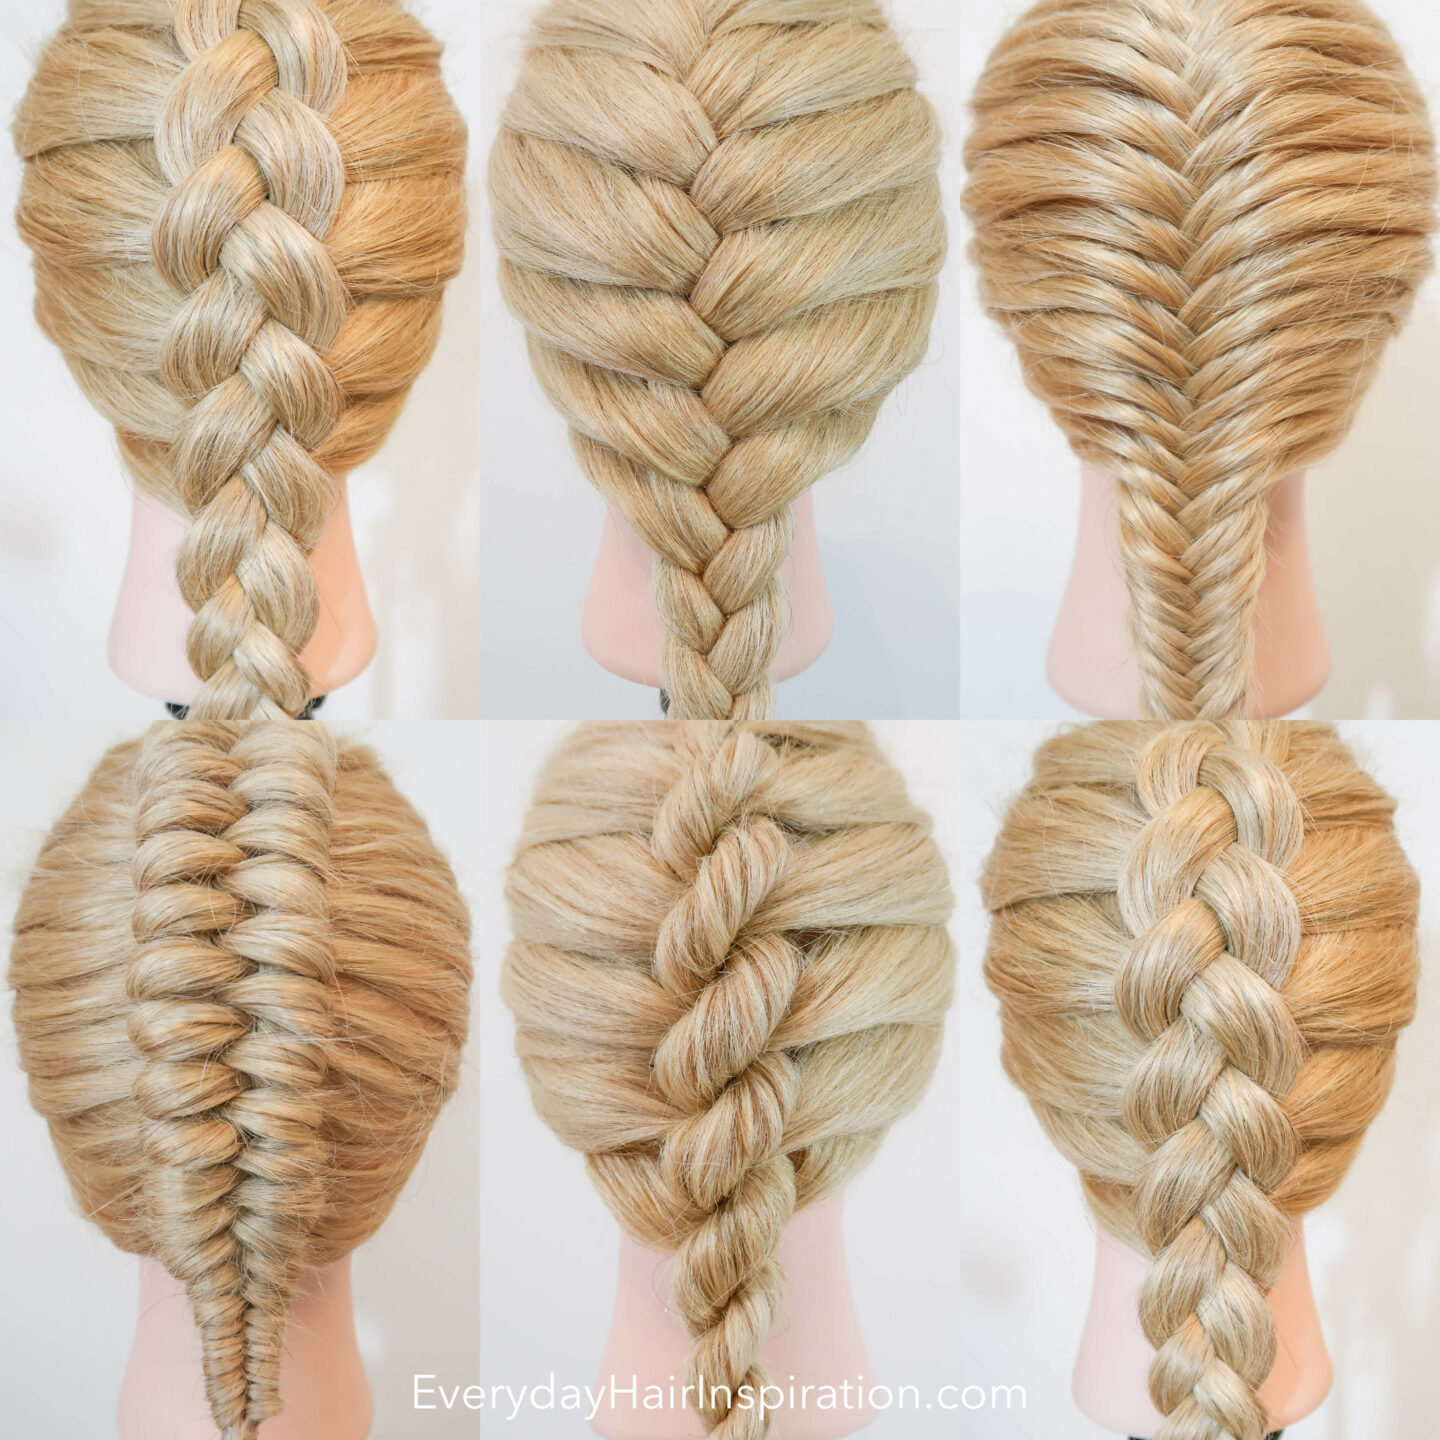 6 braids on a blonde hairdresser doll lined up next to each other in 2 rows. The braids are a Dutch Braid, a French braid, a French fishtail braid, a dutch infinity braid, a French rope braid and a Dutch Braid.